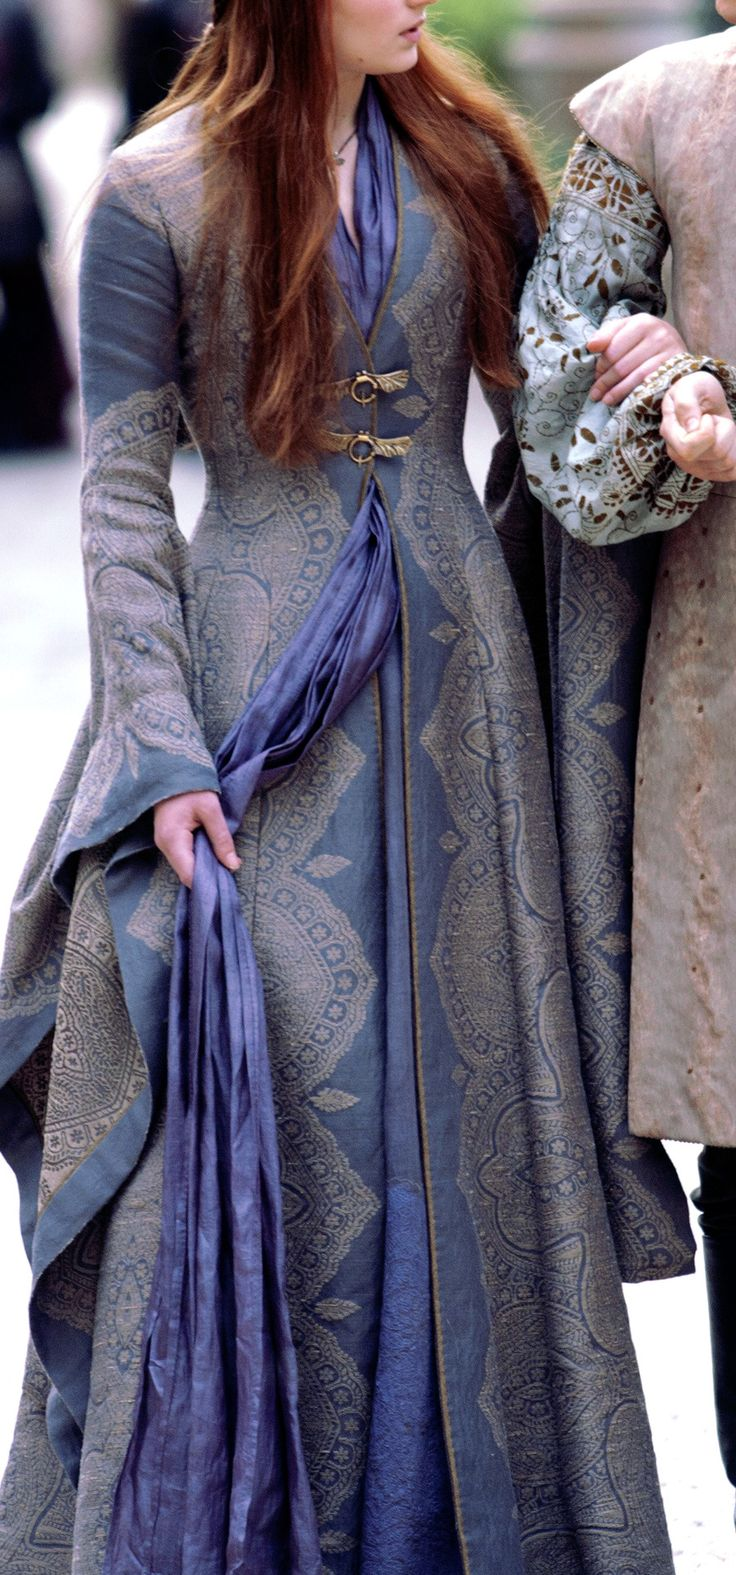 Gowns Pagan Wicca Witch: Beautiful #gown.